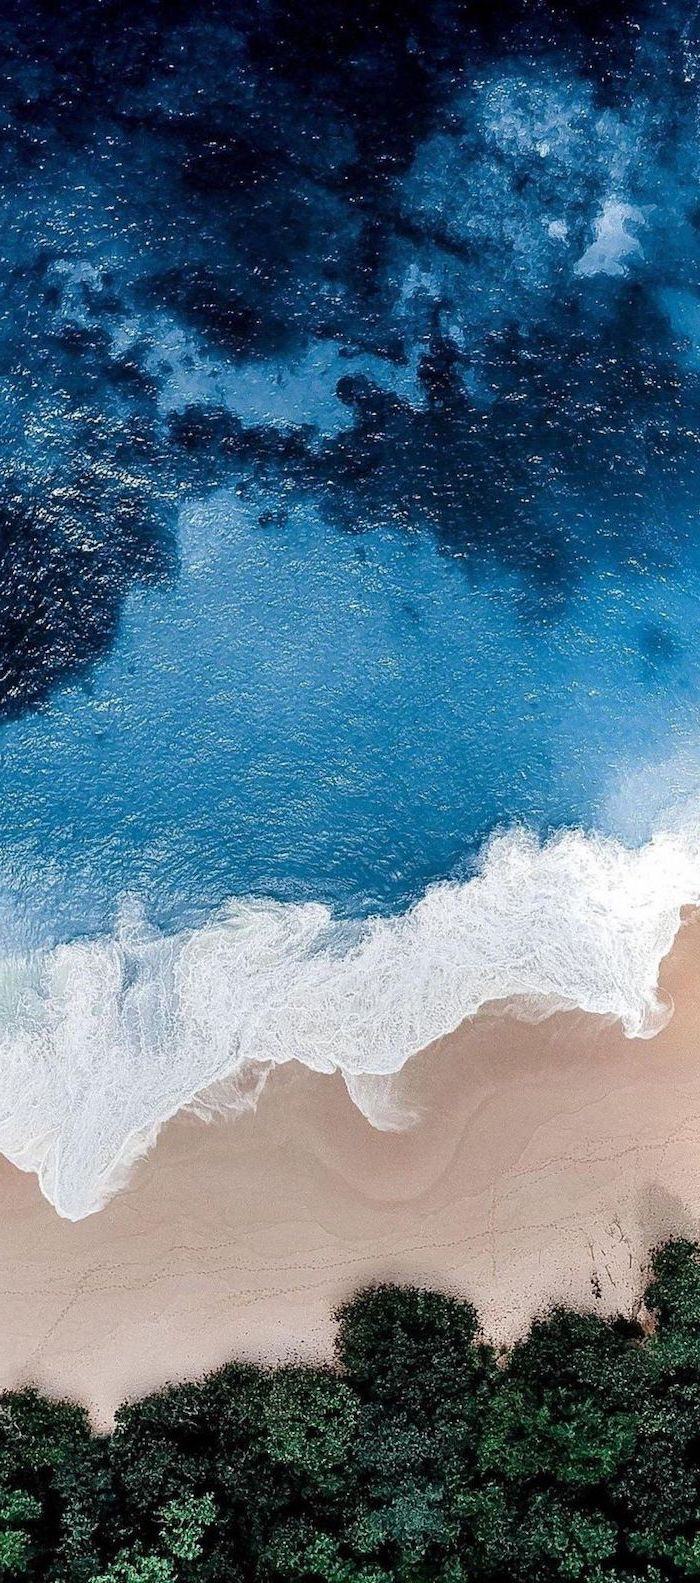 shades of blue, ocean water, beach and trees, cute wallpapers